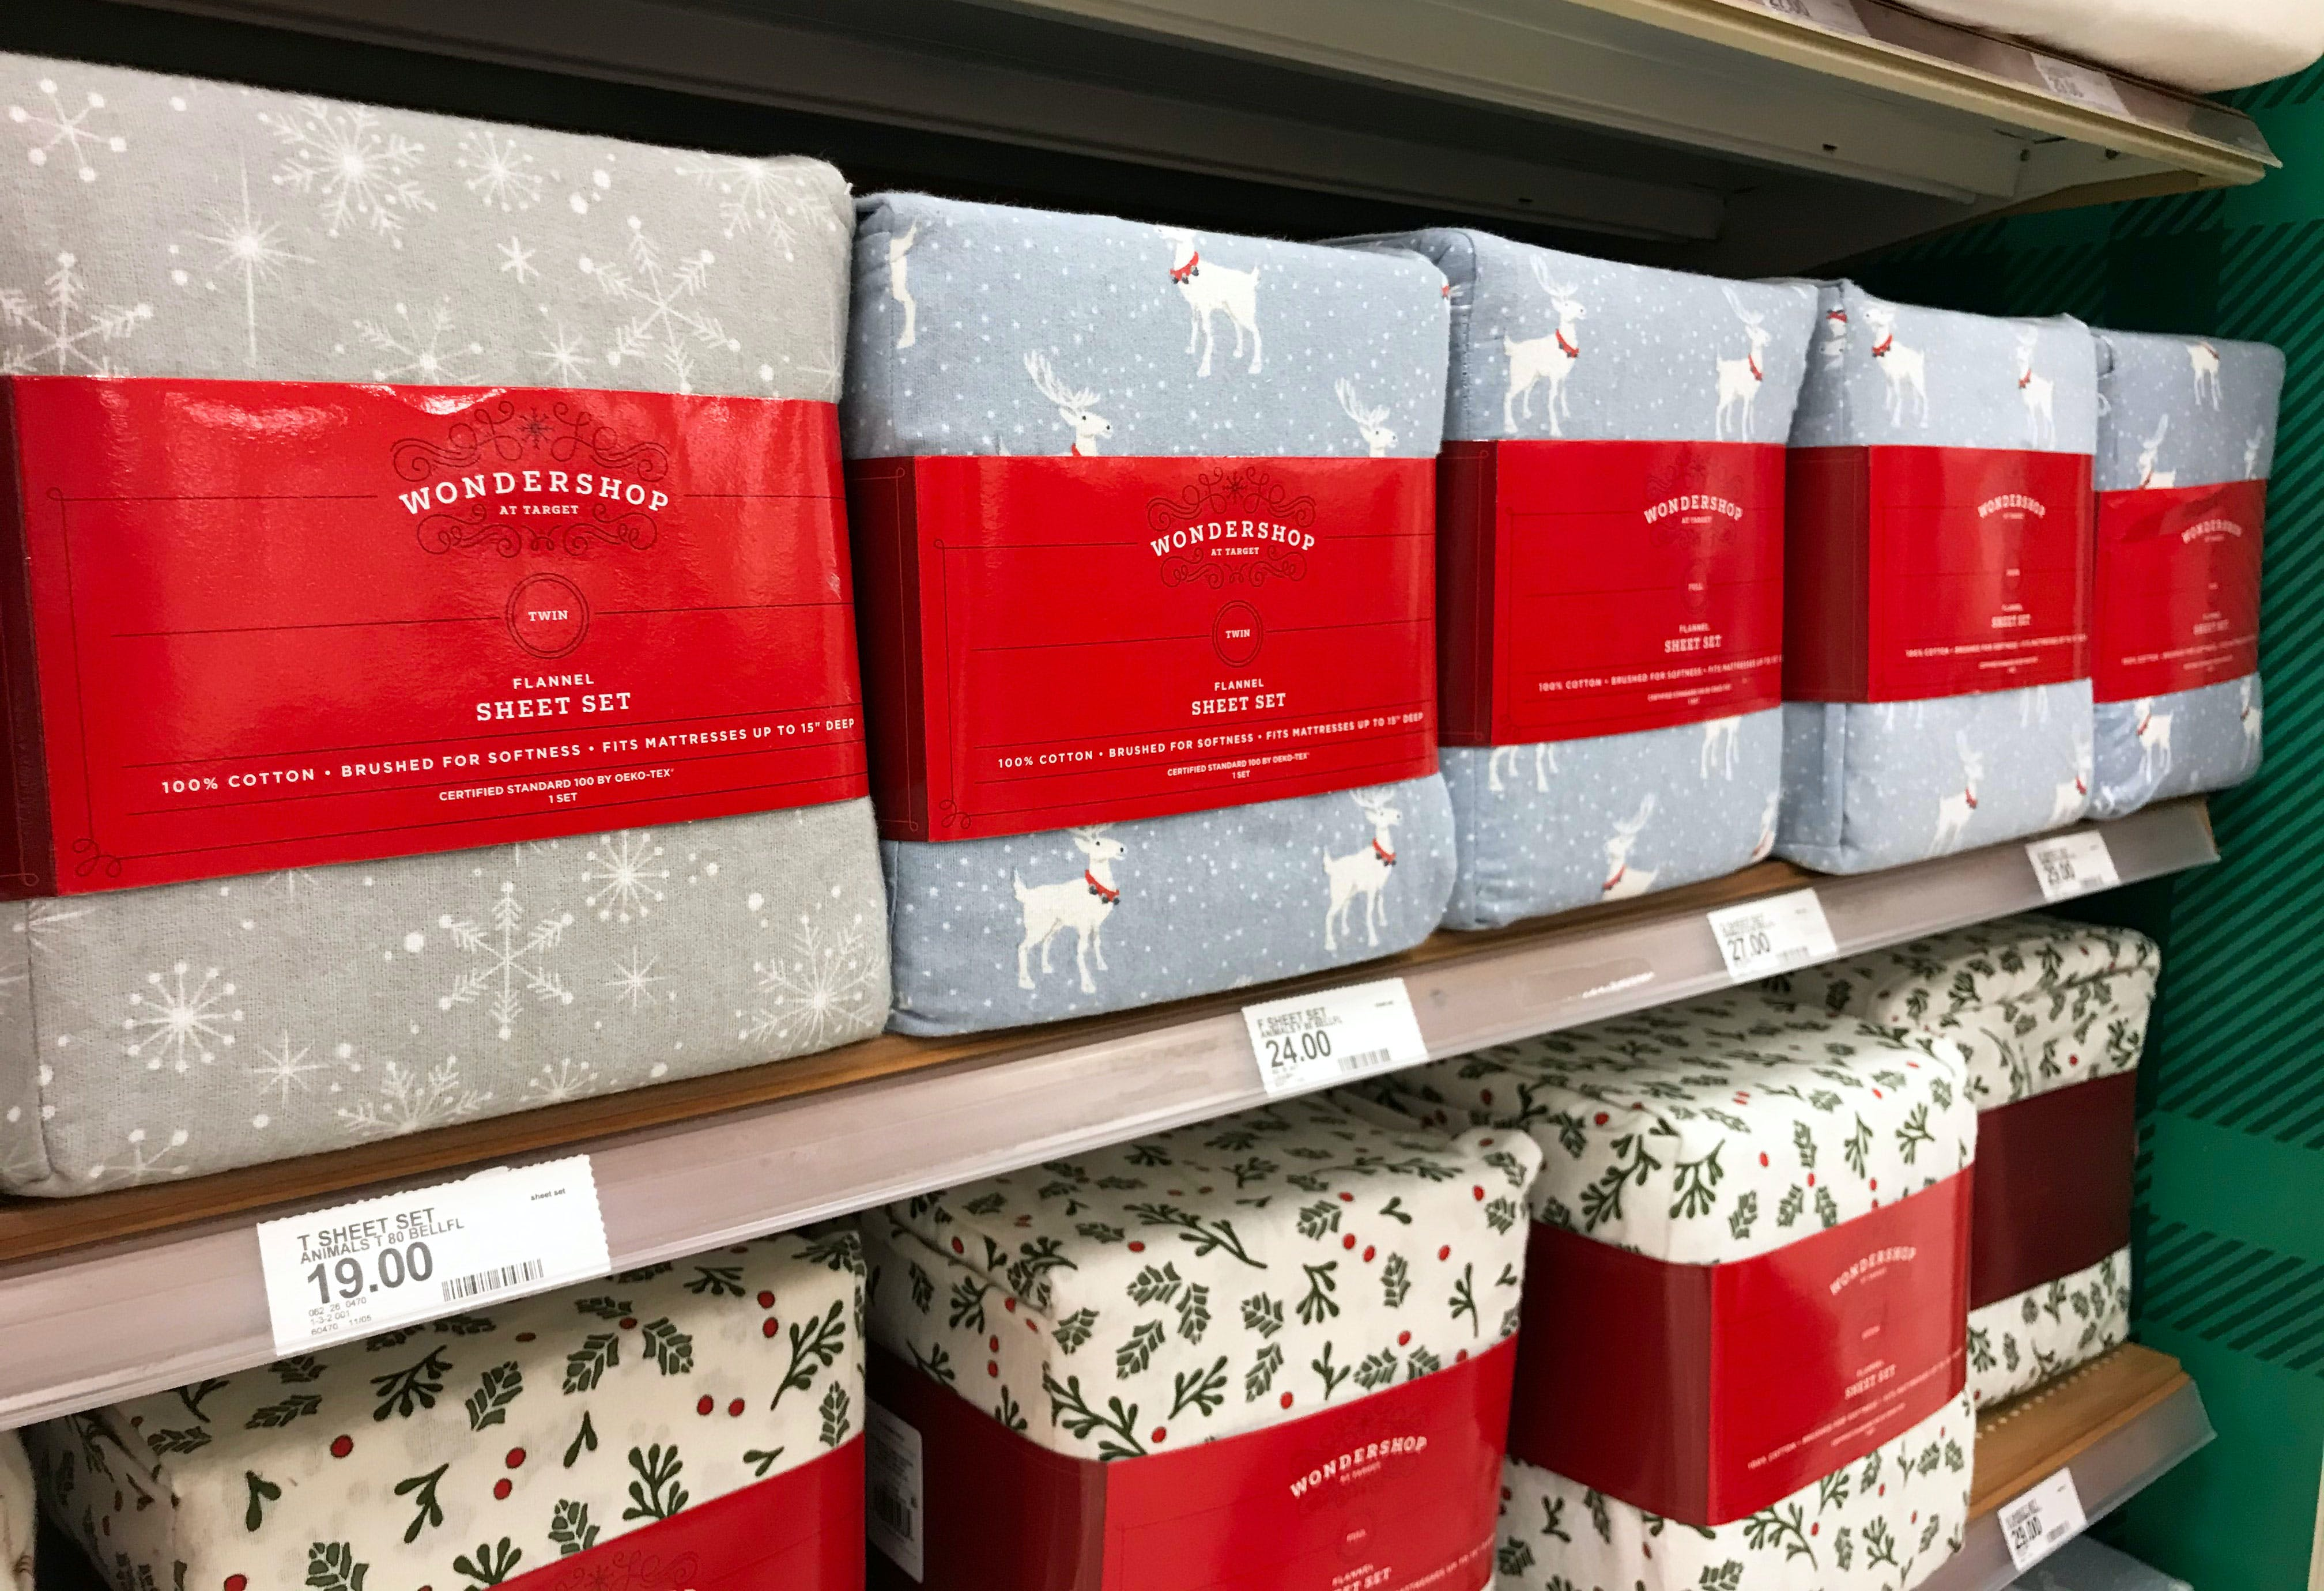 3 Piece Flannel Sheet Sets Only 13 30 At Target The Krazy Coupon Lady